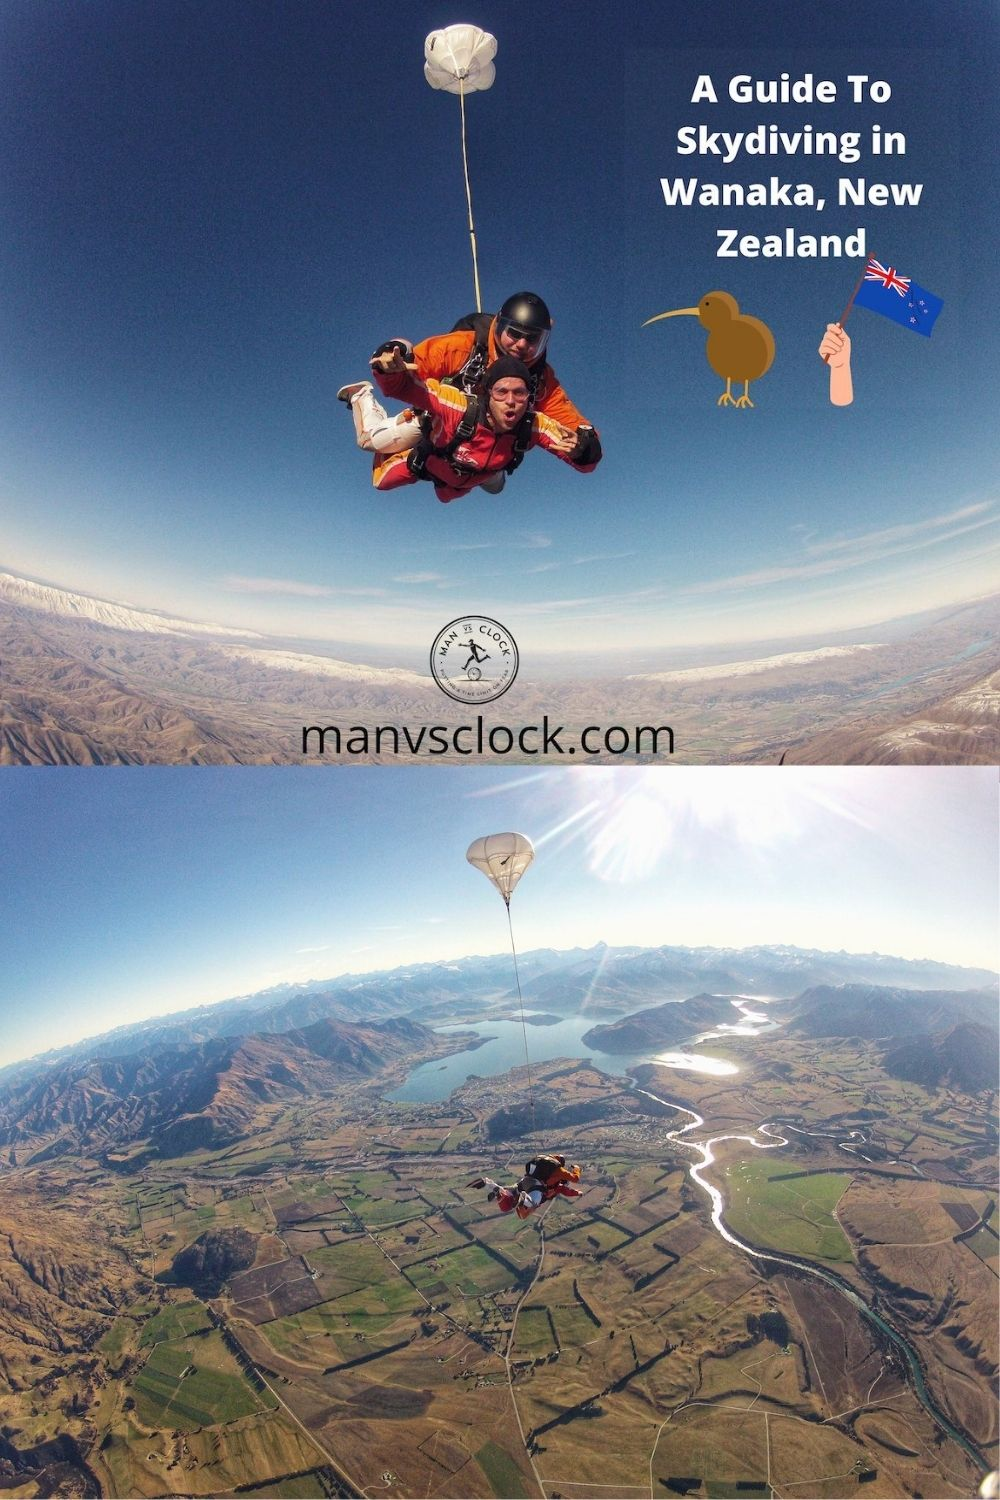 A guide to skydiving in Wanaka, New Zealand